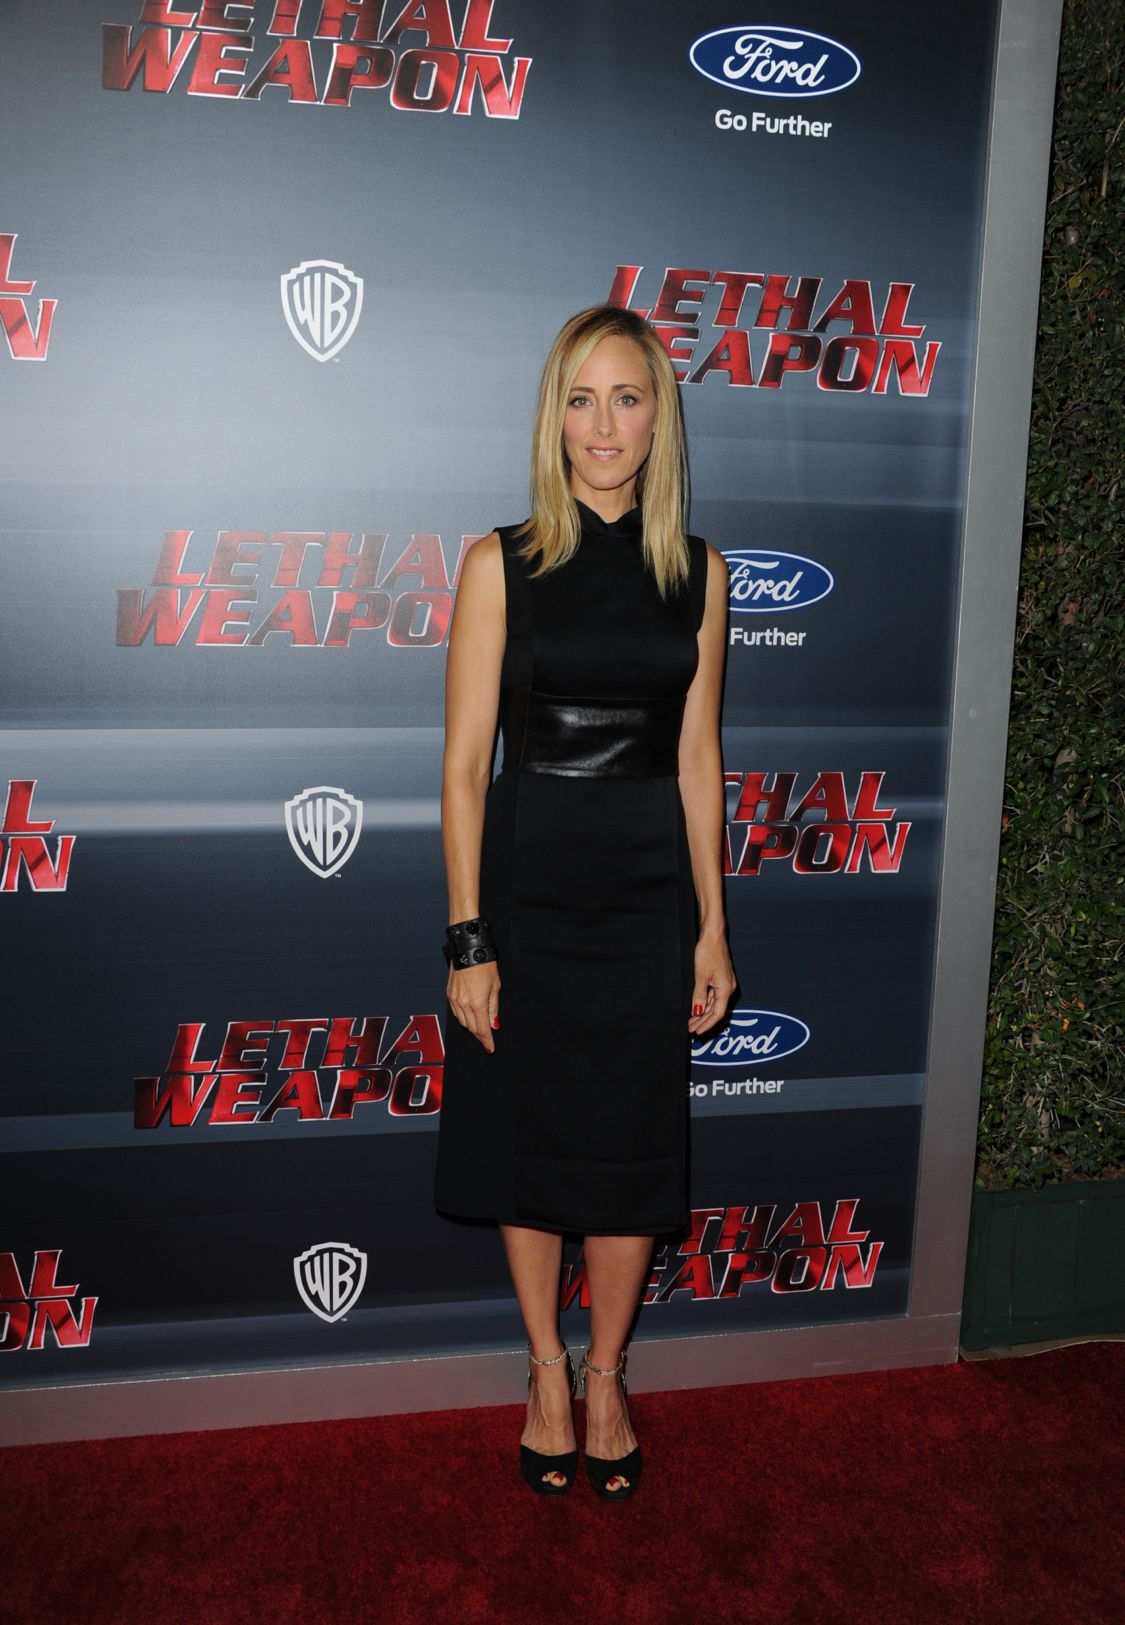 LETHAL WEAPON: Kim Raver celebrates the LETHAL WEAPON premiere party at NeueHouse Hollywood on Monday, Sept. 12, in Los Angeles, CA, sponsored by Ford. LETHAL WEAPON premieres Wednesday, Sept. 21 (8:00-9:00 PM ET/PT) on FOX. ©2016 Fox Broadcasting Co. CR: Frank Micelotta/FOX